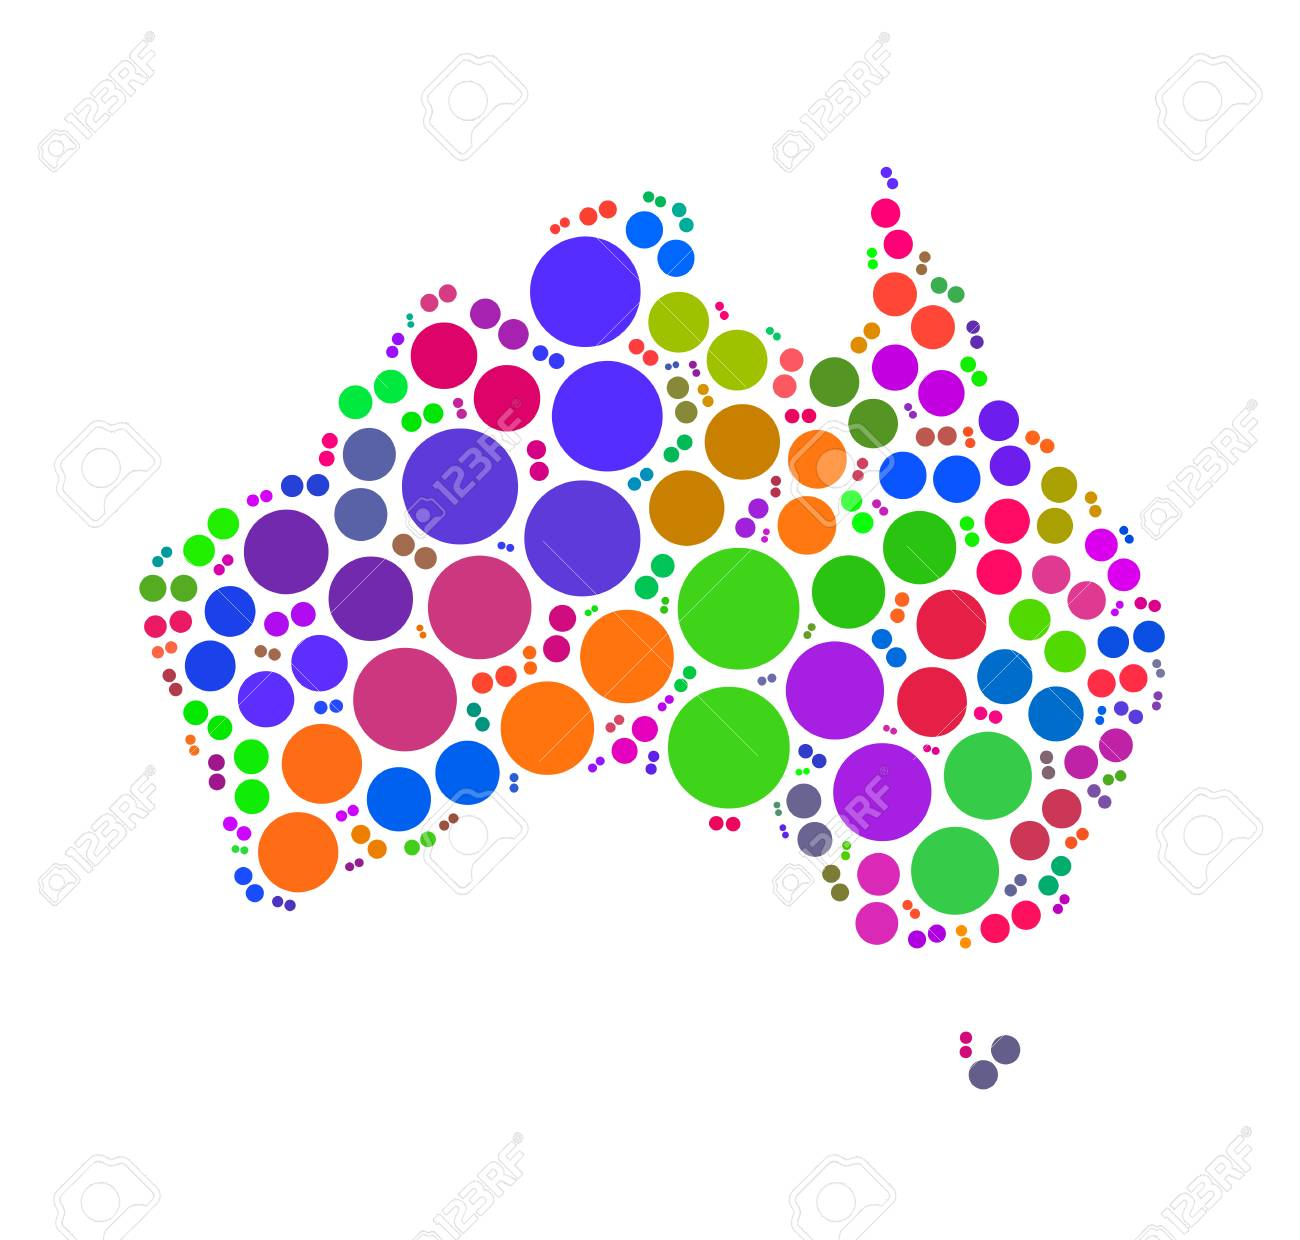 Australia Map Shape.Australia Map Shape Design By Color Point Stock Photo Picture And